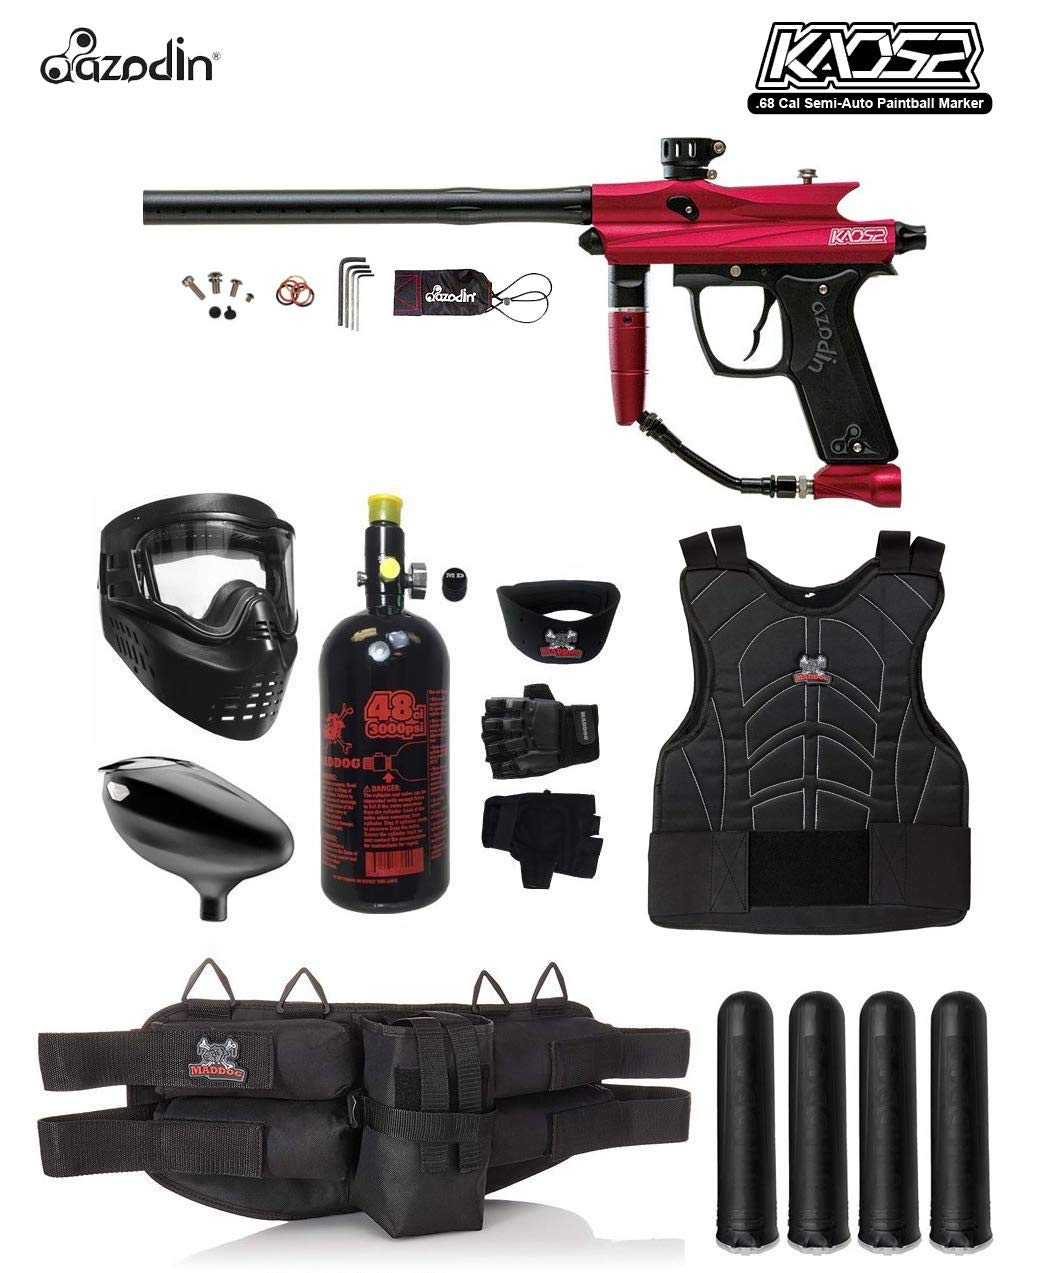 MAddog Azodin KAOS 2 Starter Protective HPA Paintball Gun Package - Red/Black